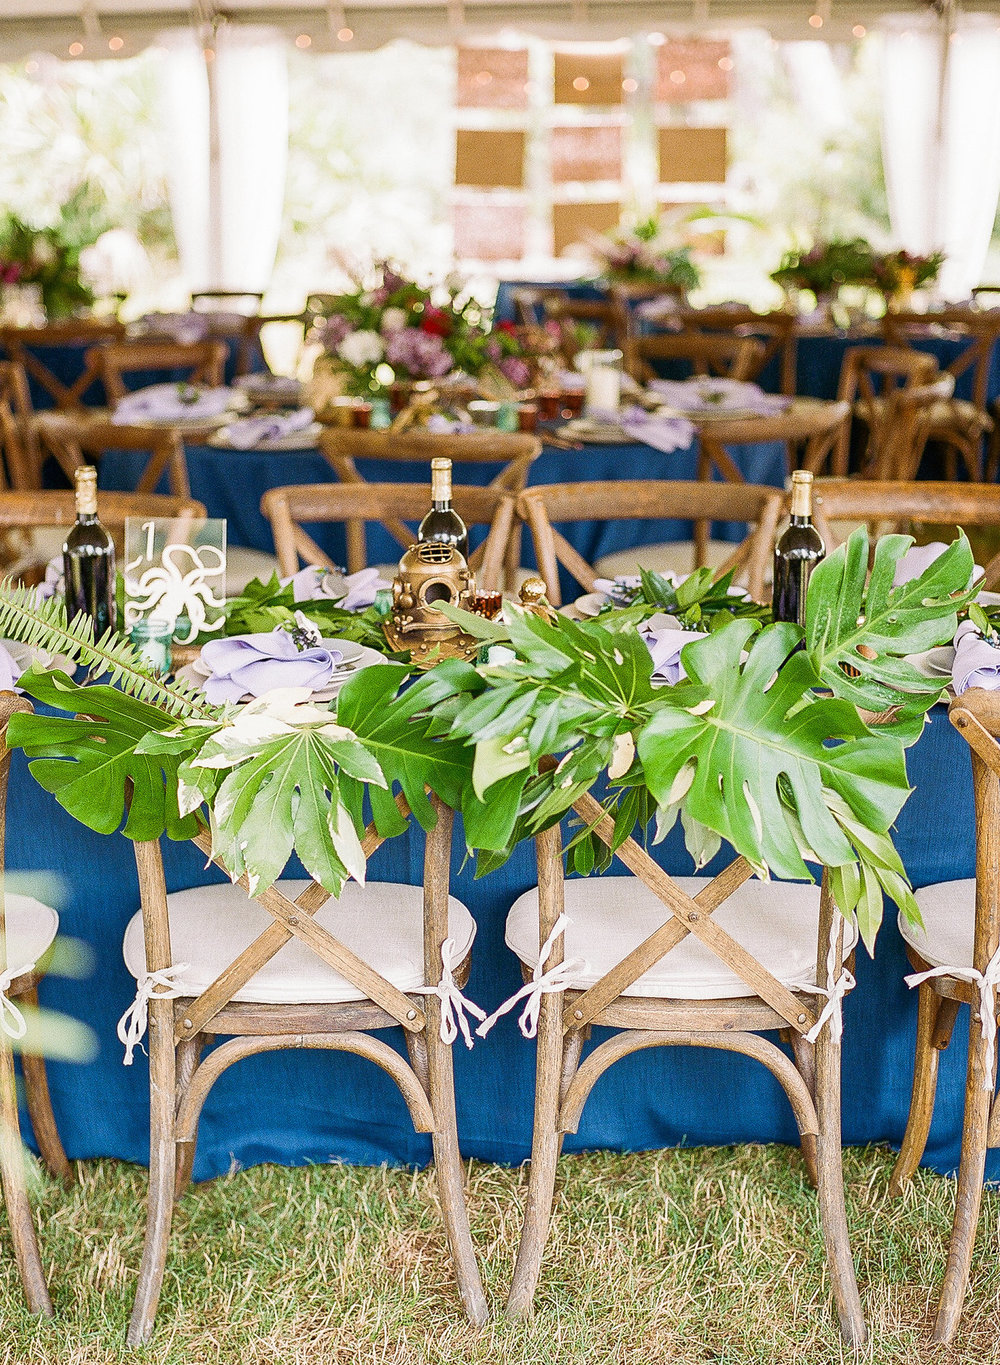 ivory_and_beau_savannah_bridal_shop_what_to_expect_when_booking_your_wedding_flowers_savannah_florist_savannah_wedding_florist_wedding_flowers_tips_wedding_flowers_inspiration_4.jpg